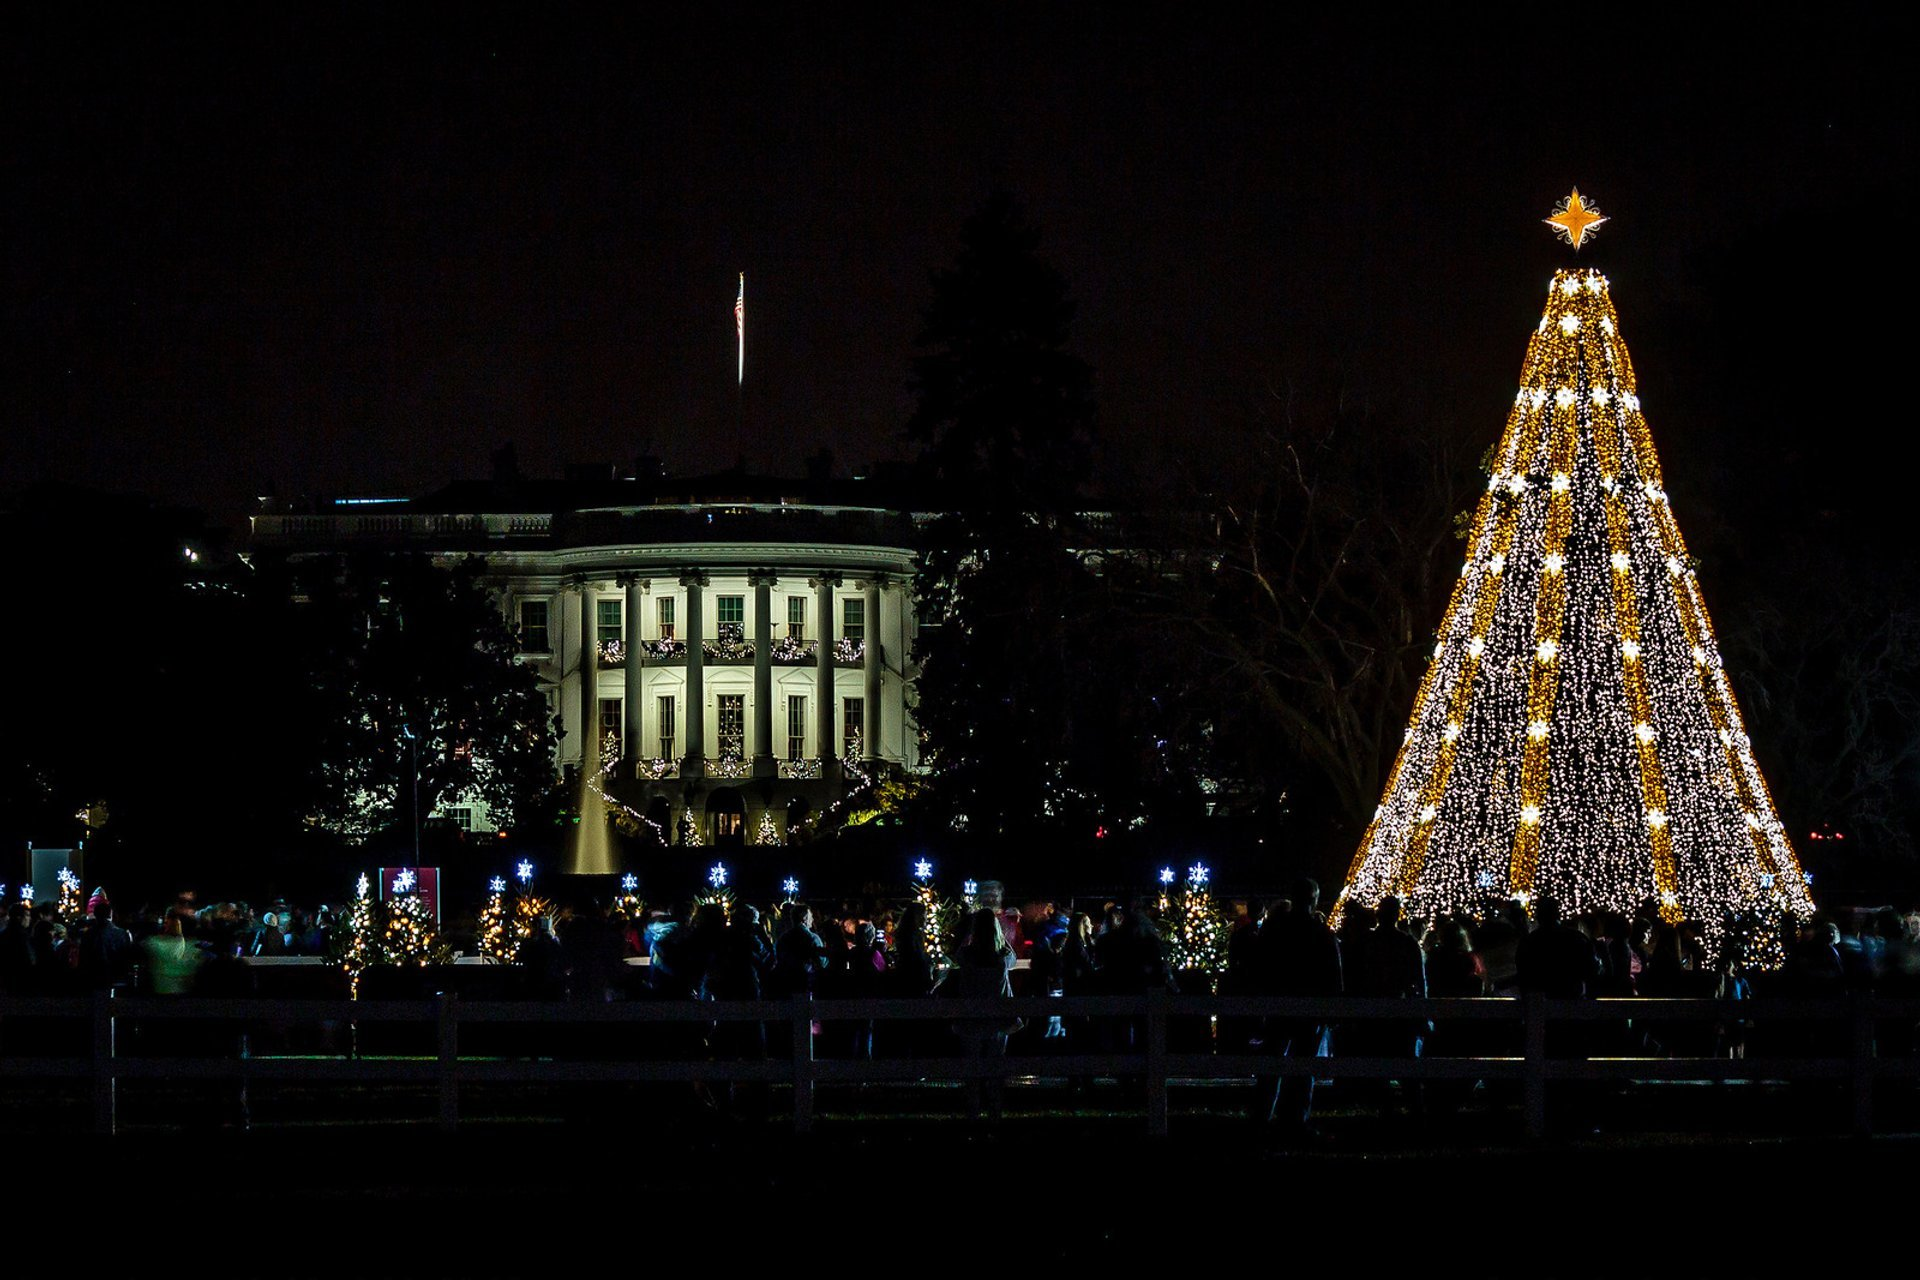 National Christmas Tree Lighting.National Christmas Tree Lighting Ceremony 2019 In Washington